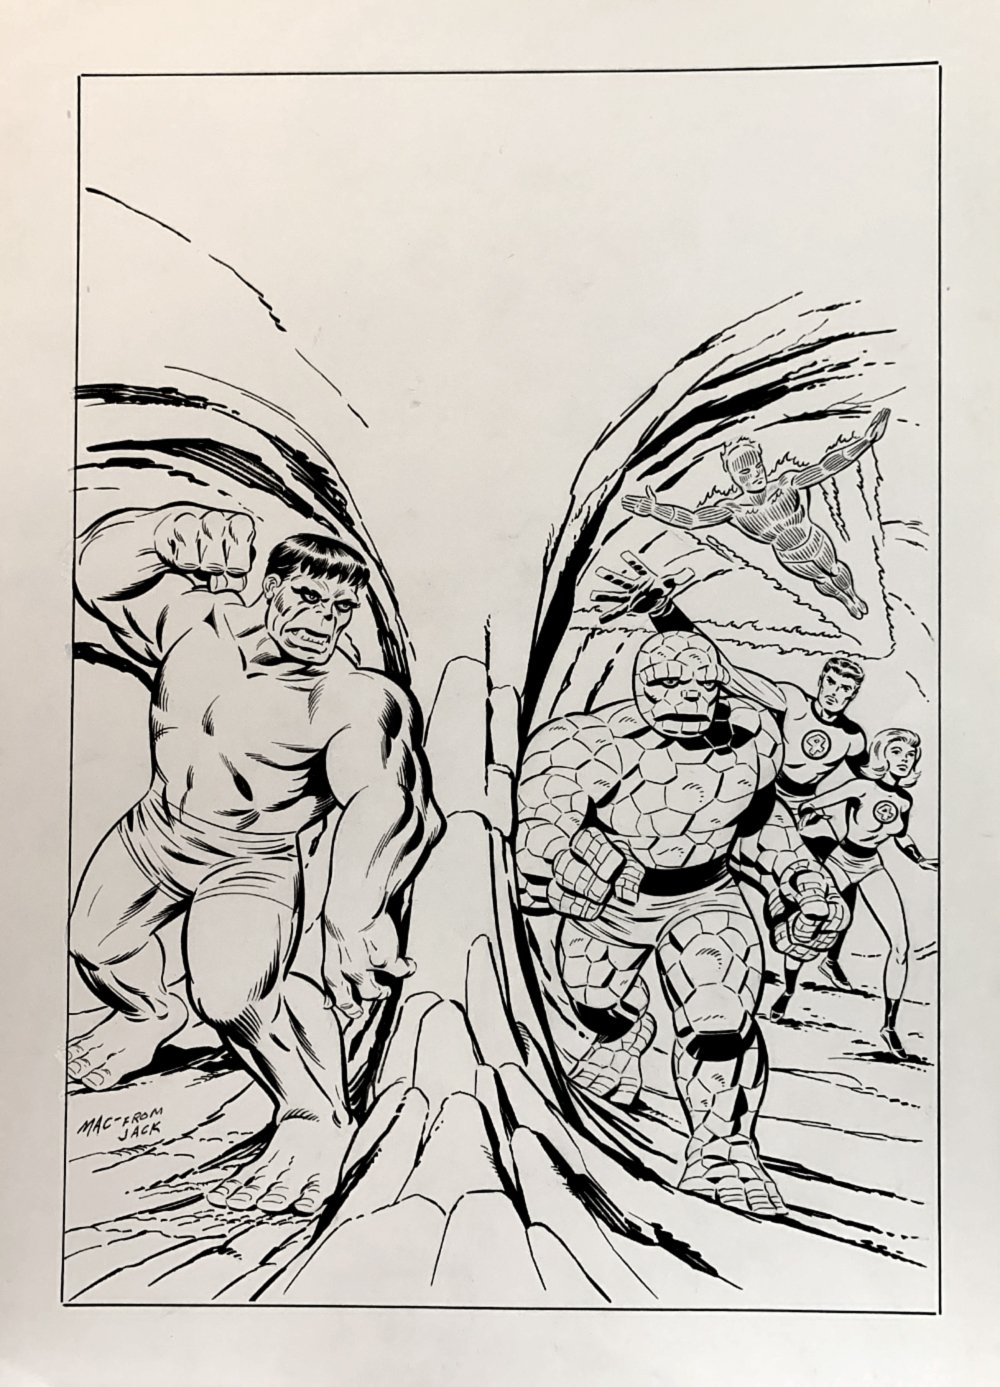 Fantastic Four #12 Cover Recreation